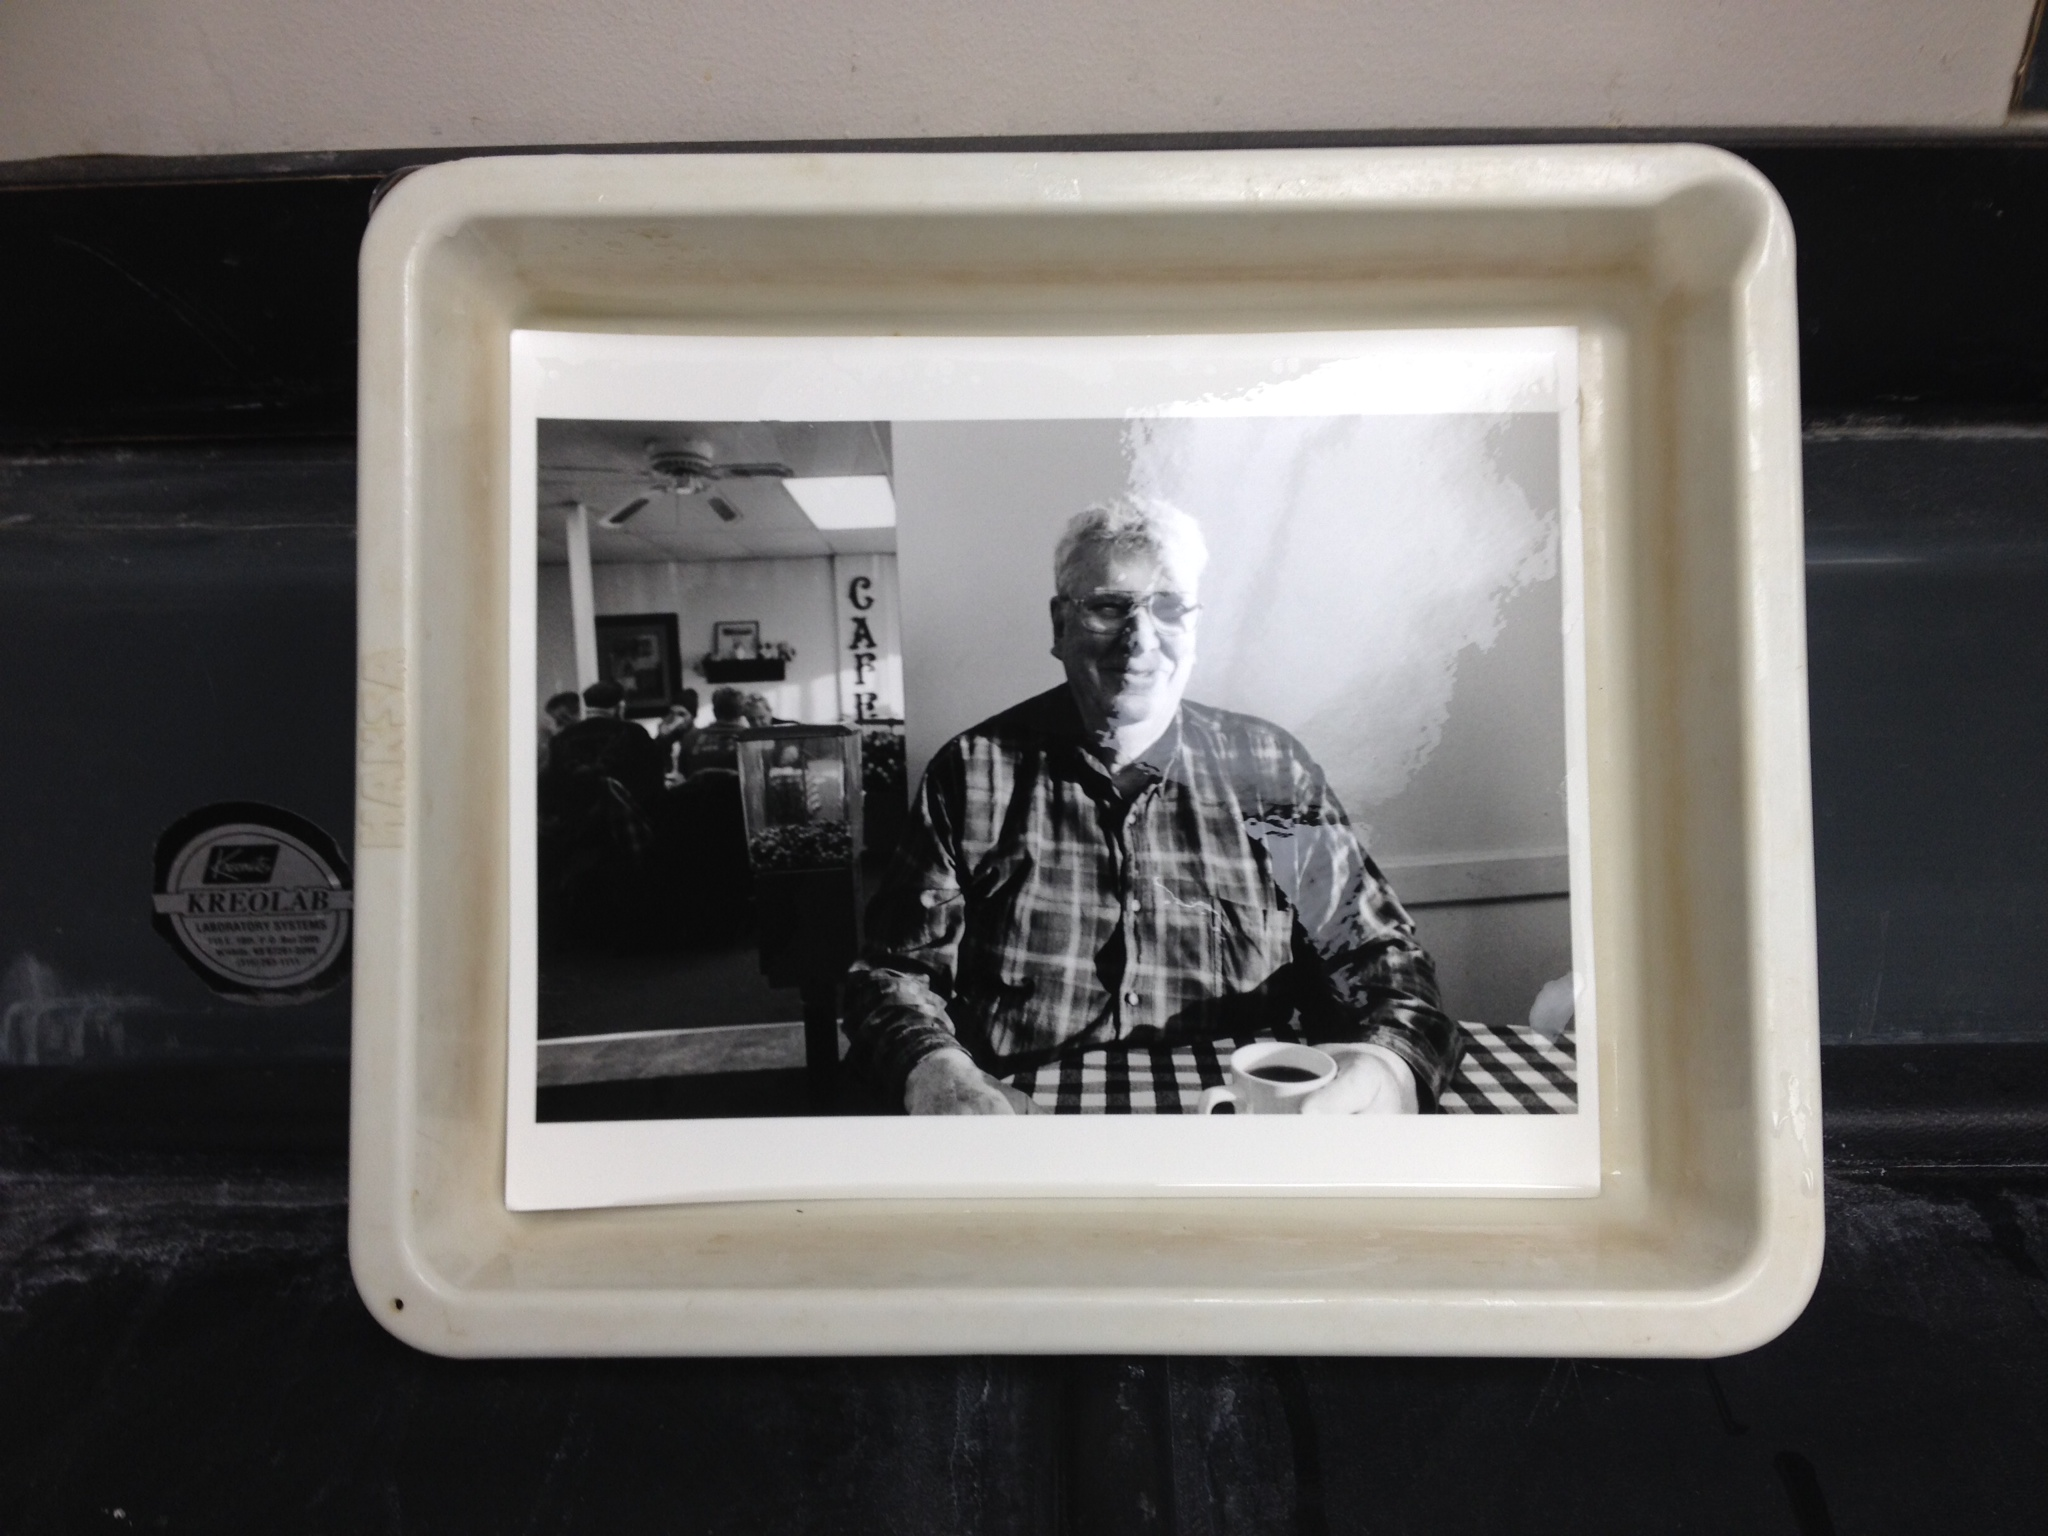 Work print of Dennis, having coffee at Ma's Cafe, in Plainview, Minnesota on Halloween morning, 2014.